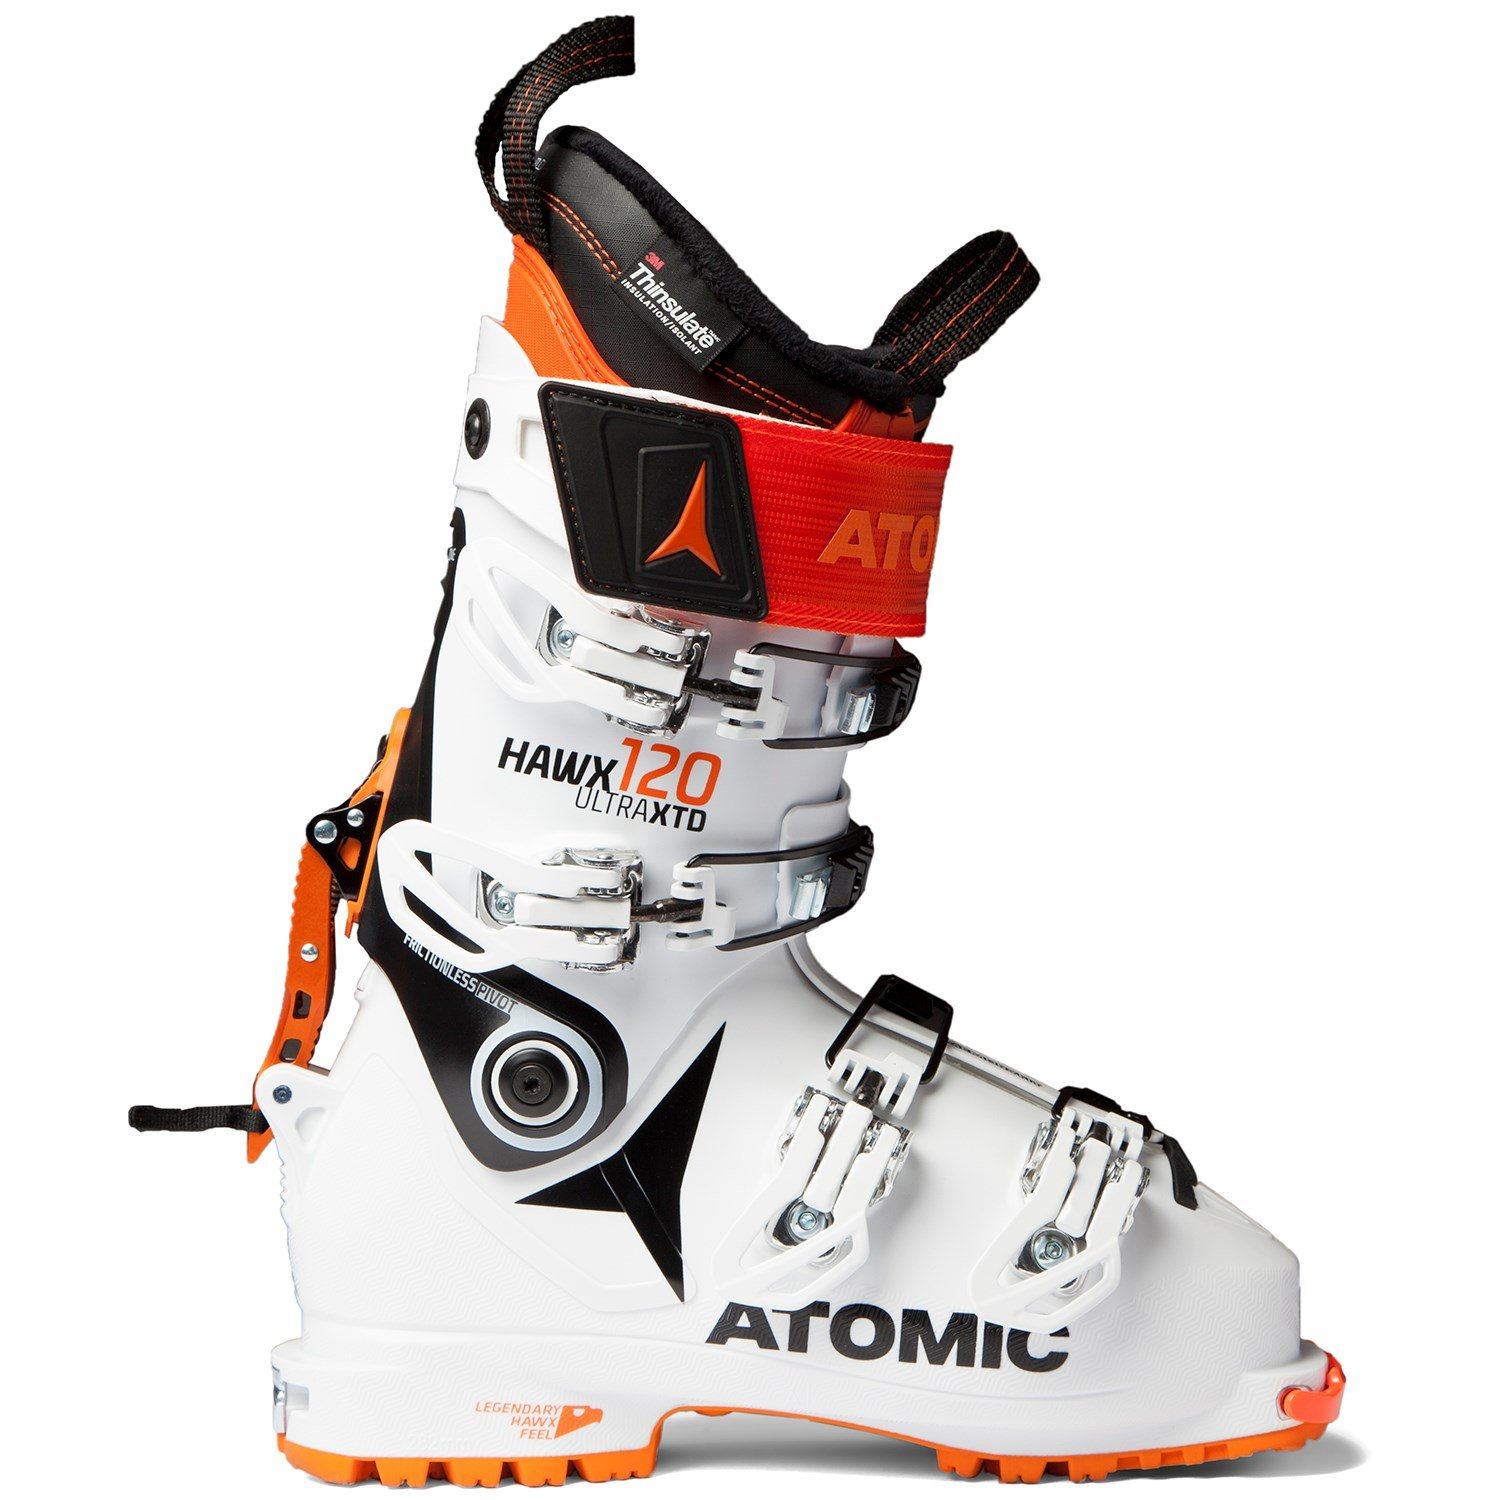 reputable site 8c56e 5c1da Atomic Hawx Ultra XTD 120 Alpine Touring Ski Boots 2019